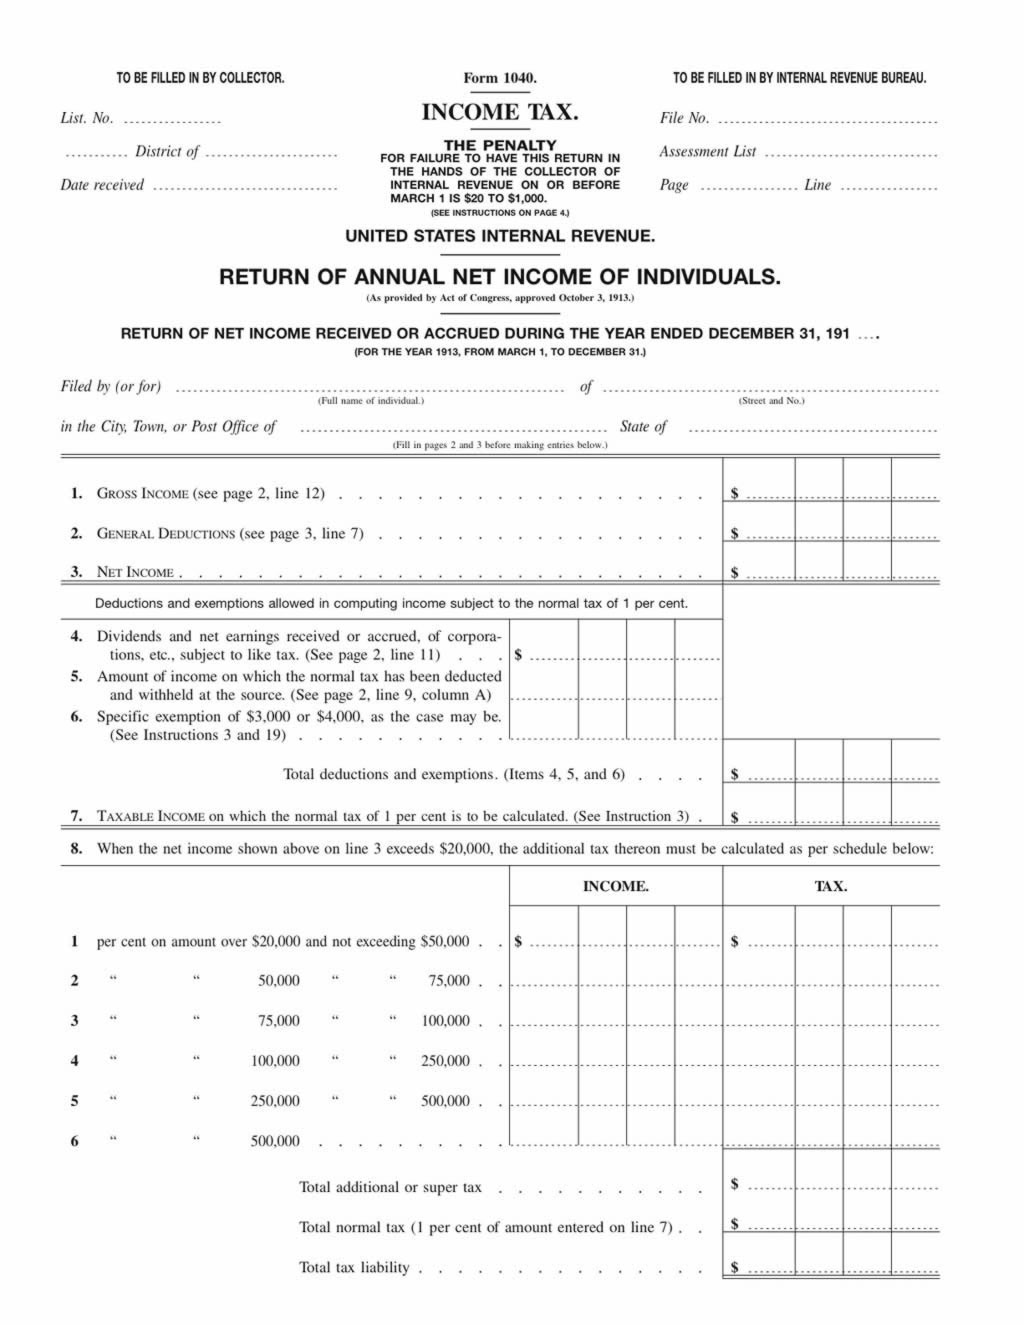 Irs form 1040 2012 choice image standard form examples the income tax in 1913 the 1913 income tax falaconquin falaconquin